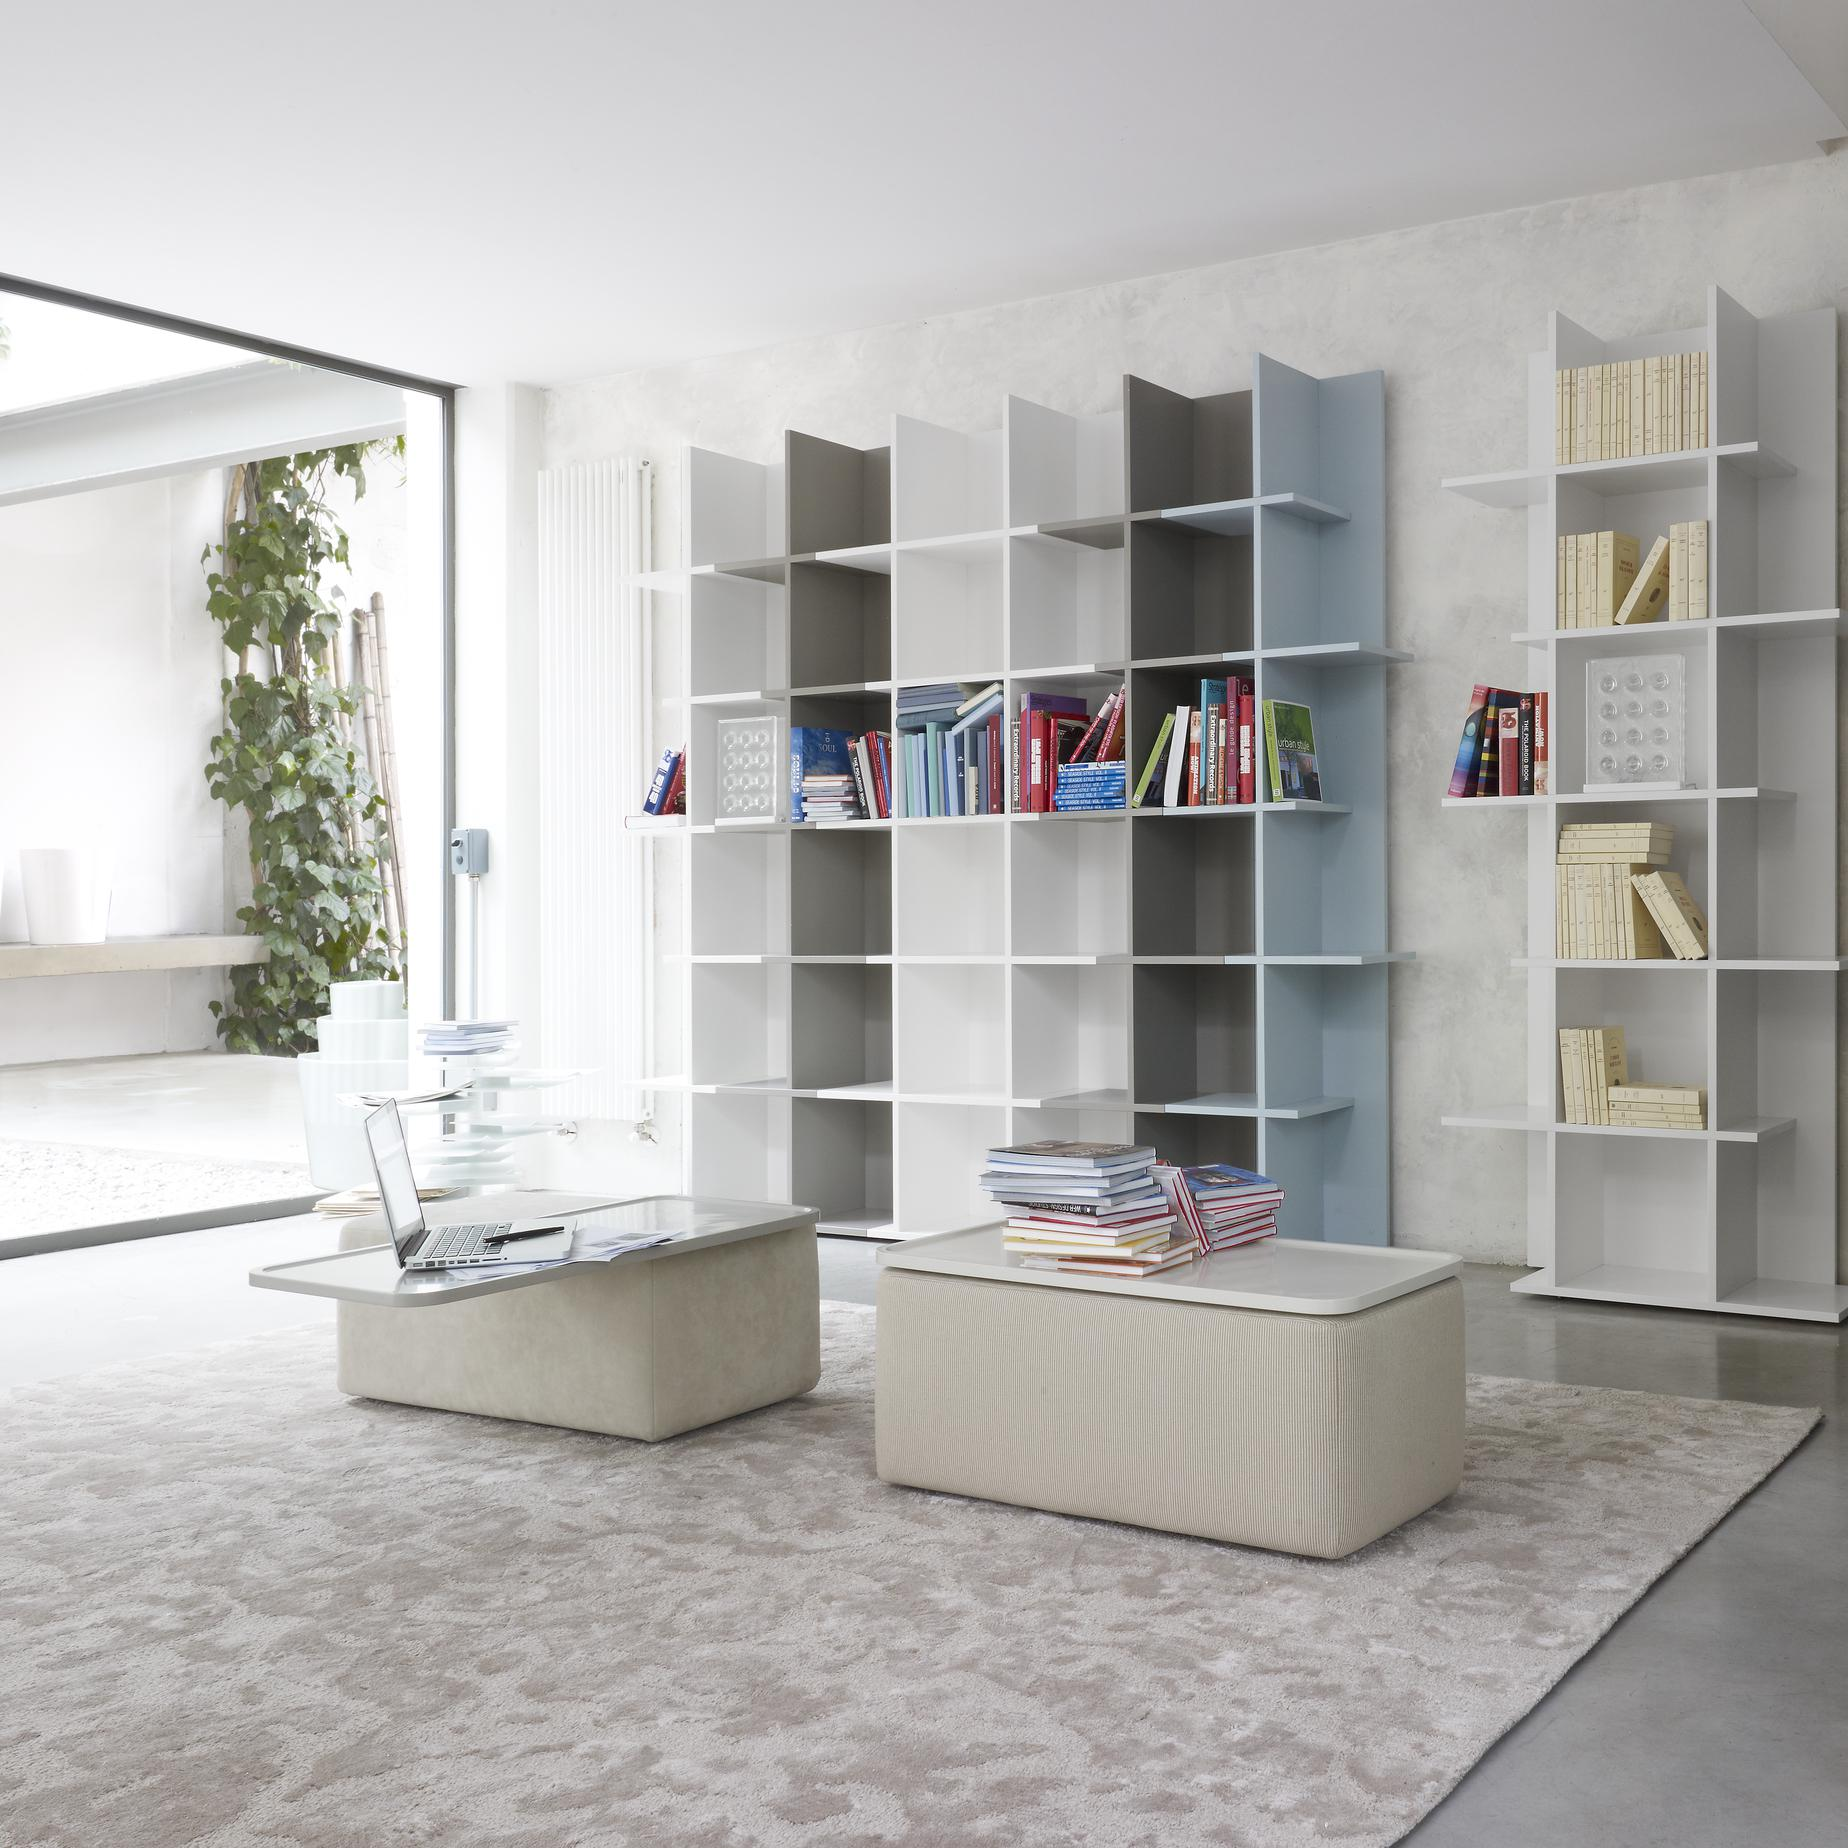 oka bookcases shelving designer kazuko okamoto ligne roset. Black Bedroom Furniture Sets. Home Design Ideas